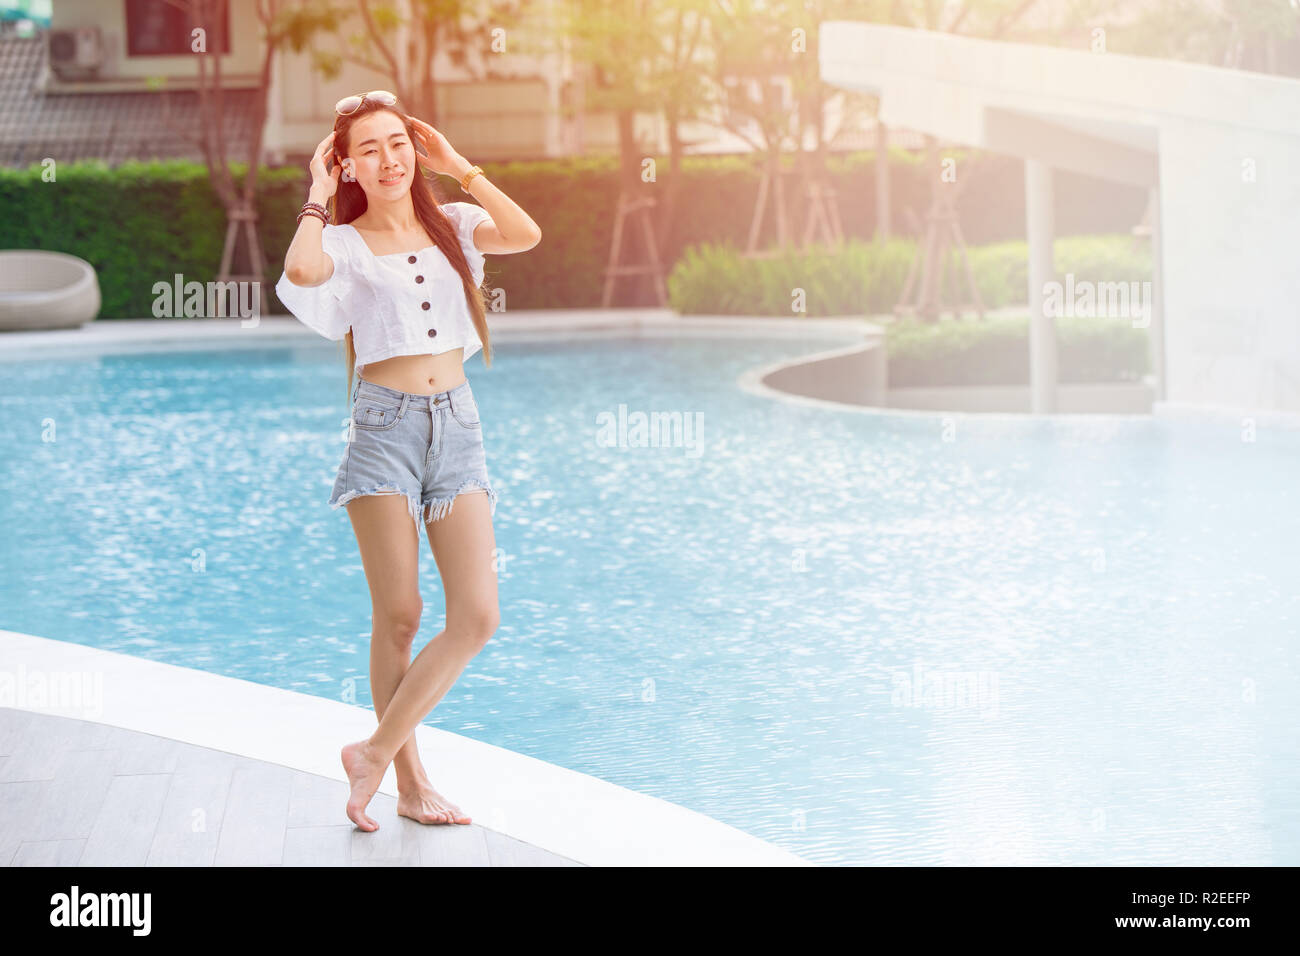 skinny asian girl teen relax smile standing at swimming pool holiday  lifestyle. - Stock Image